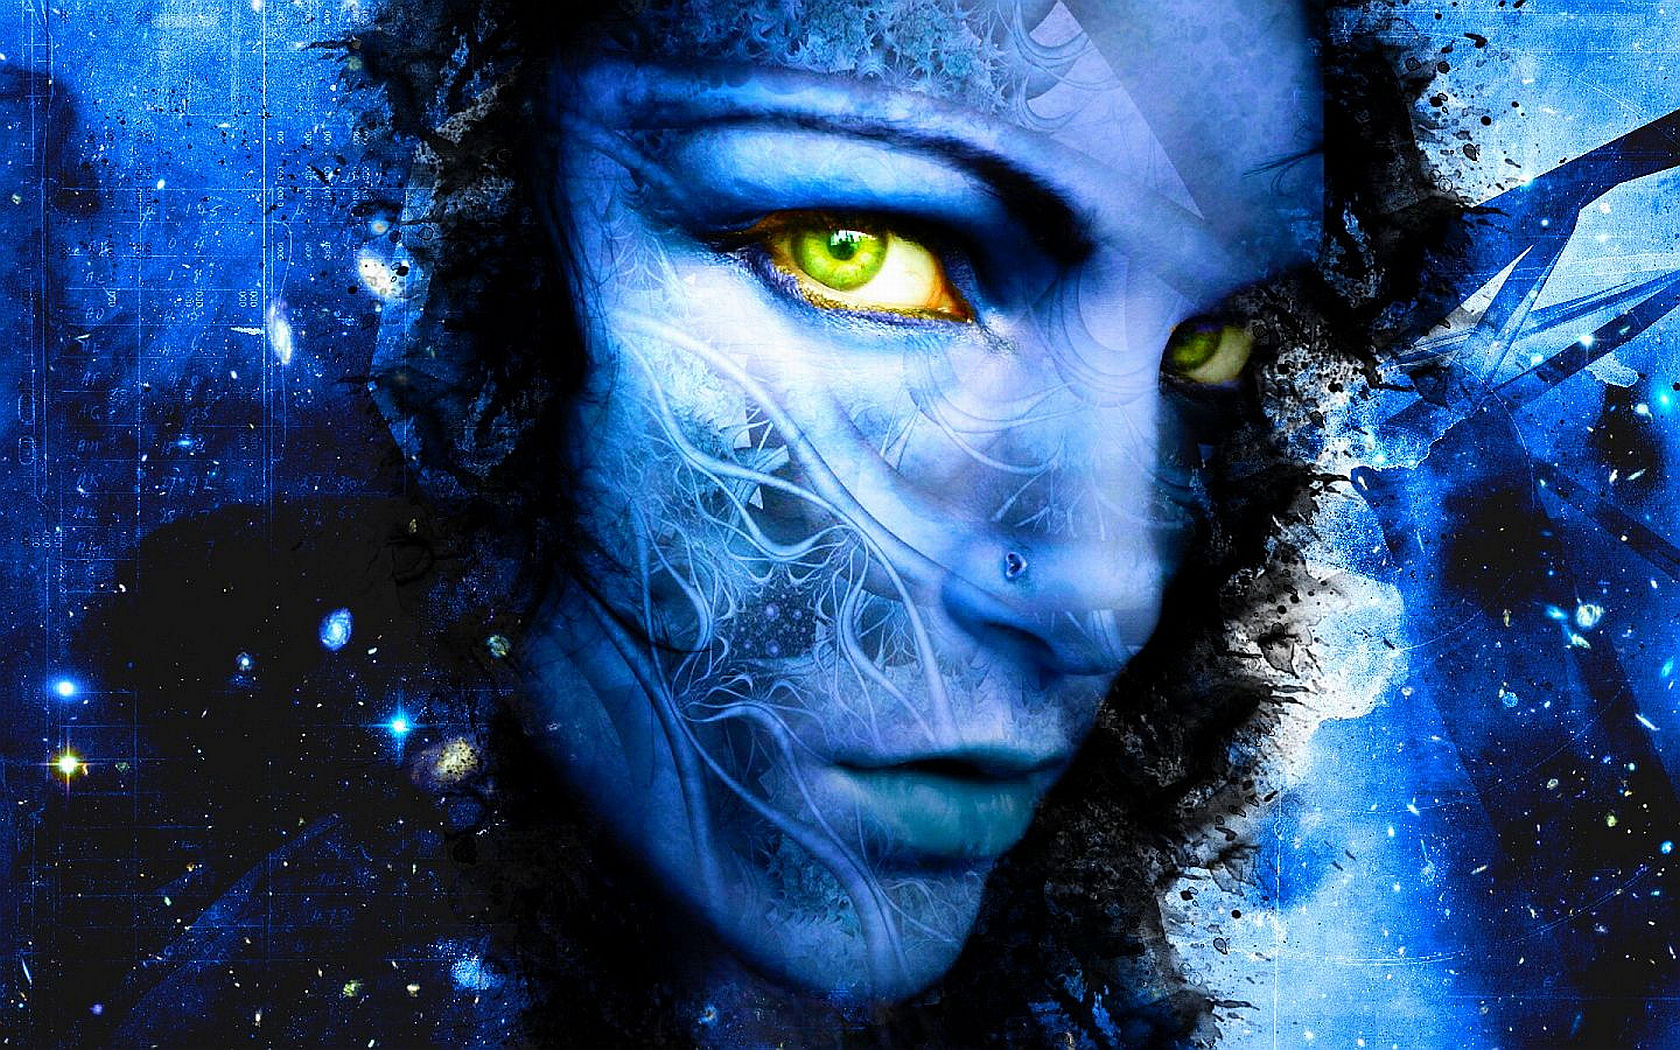 Artistic - Women  Blue Eye Artistic Wallpaper